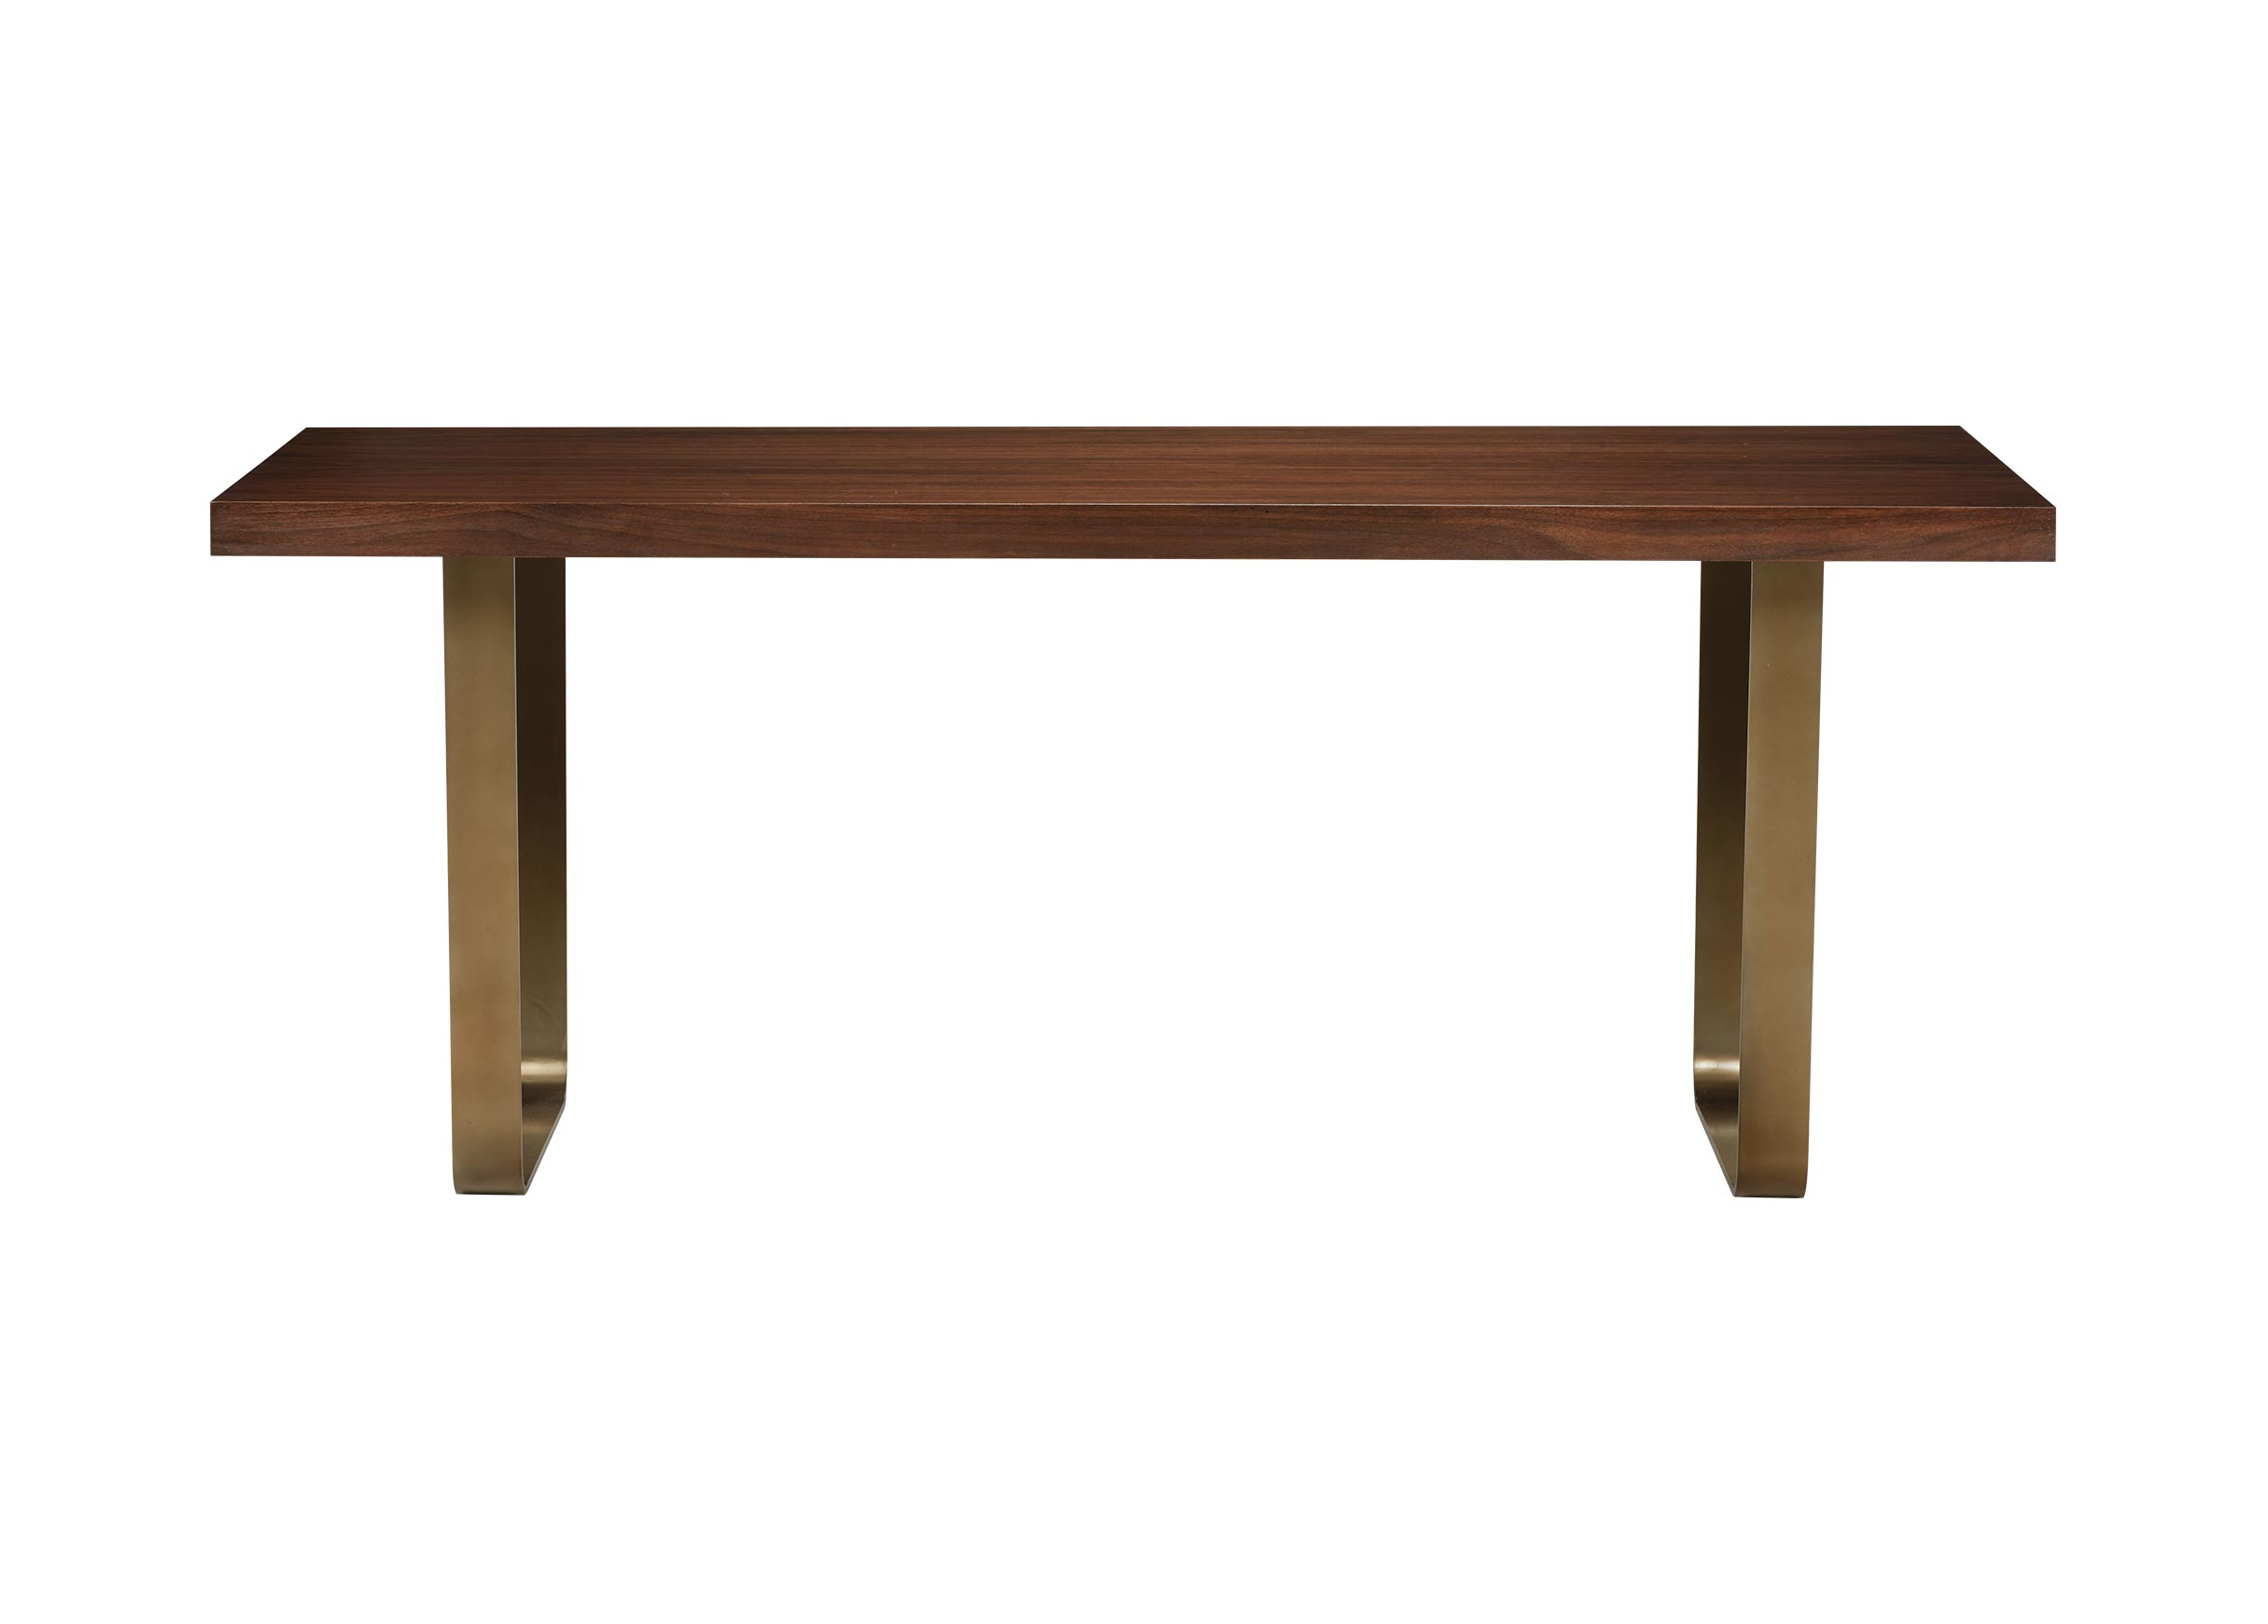 Most Recently Released Mid Century Rectangular Top Dining Tables With Wood Legs For Hoyt Wood And Metal Midcentury Modern Dining Table (Gallery 10 of 30)